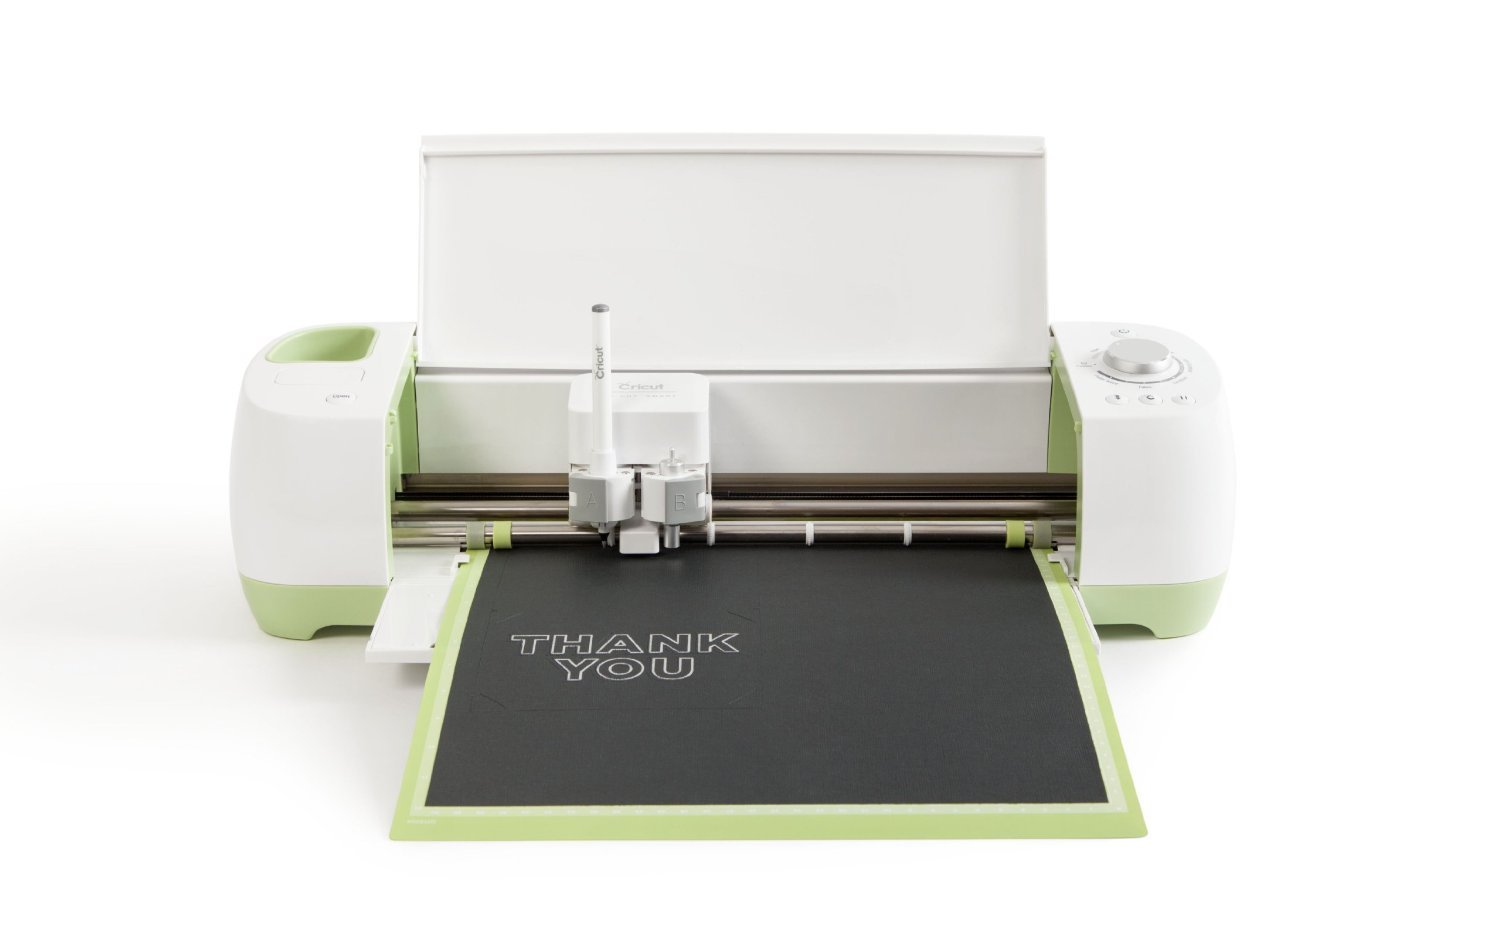 Cricut Explore Die Cutting Design Draw Cut Craft System